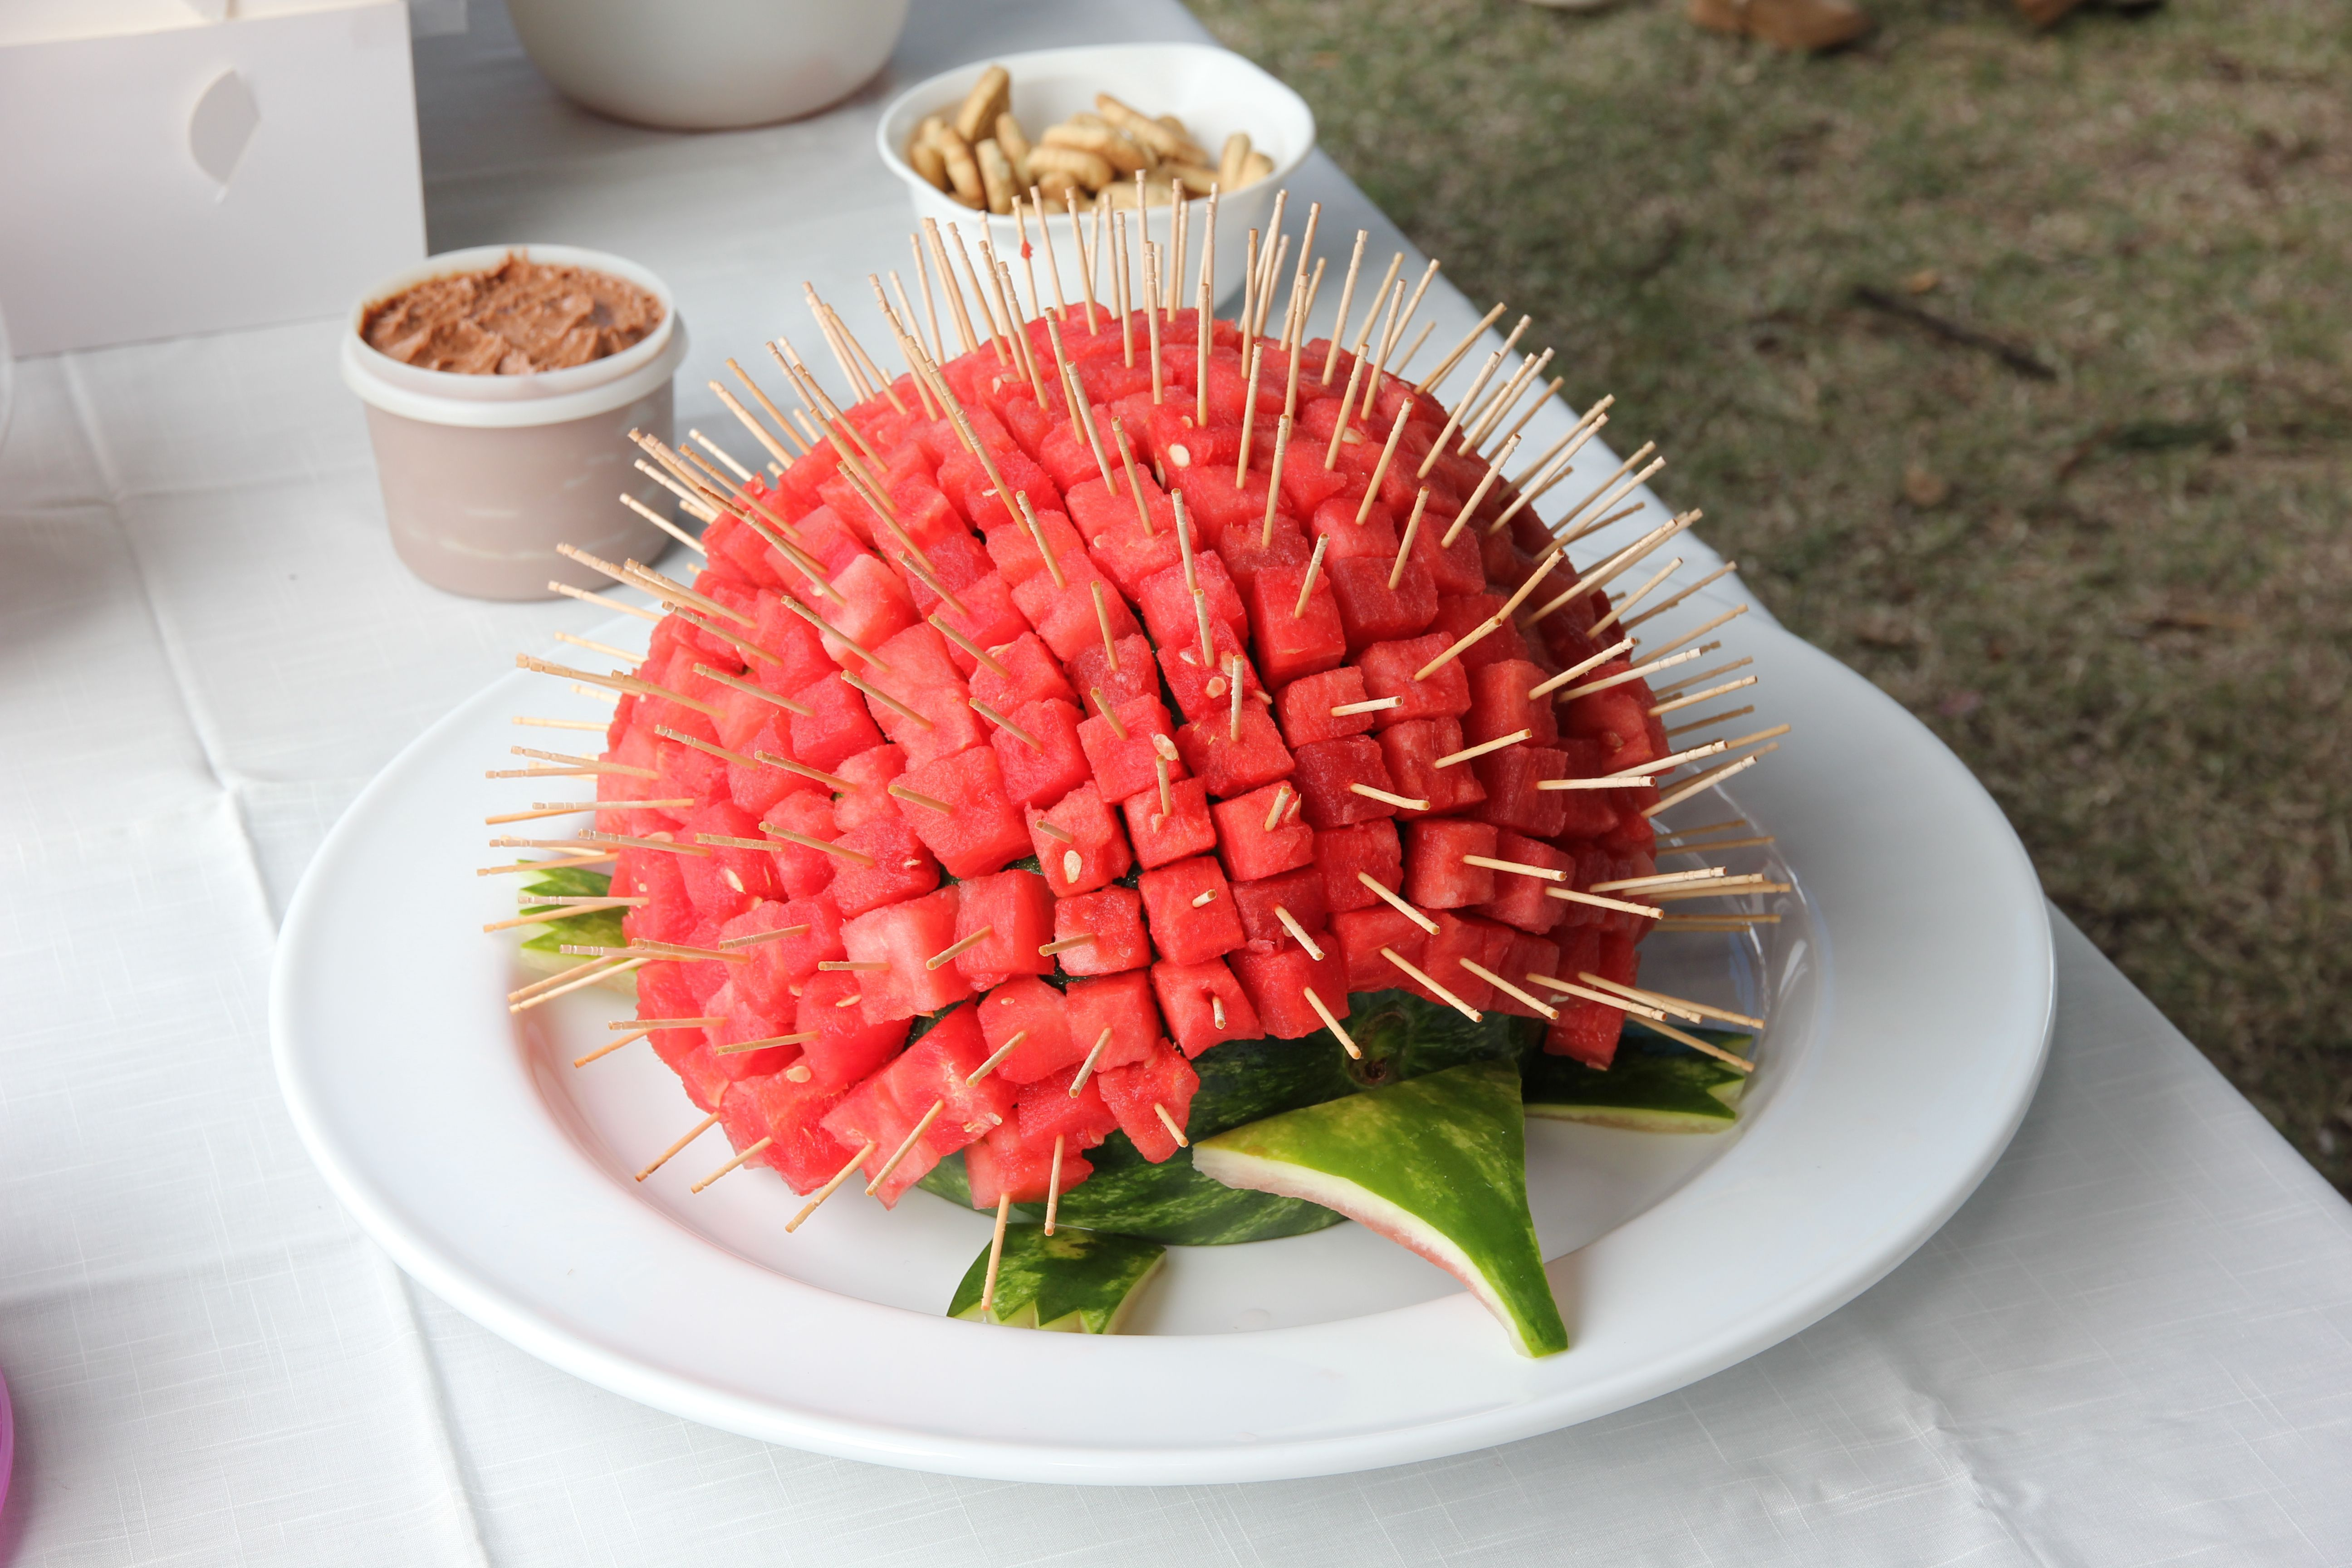 Essen Garnieren Verzieren Dekorieren Watermelon Echidna For Noah's Ark Party | Watermelon